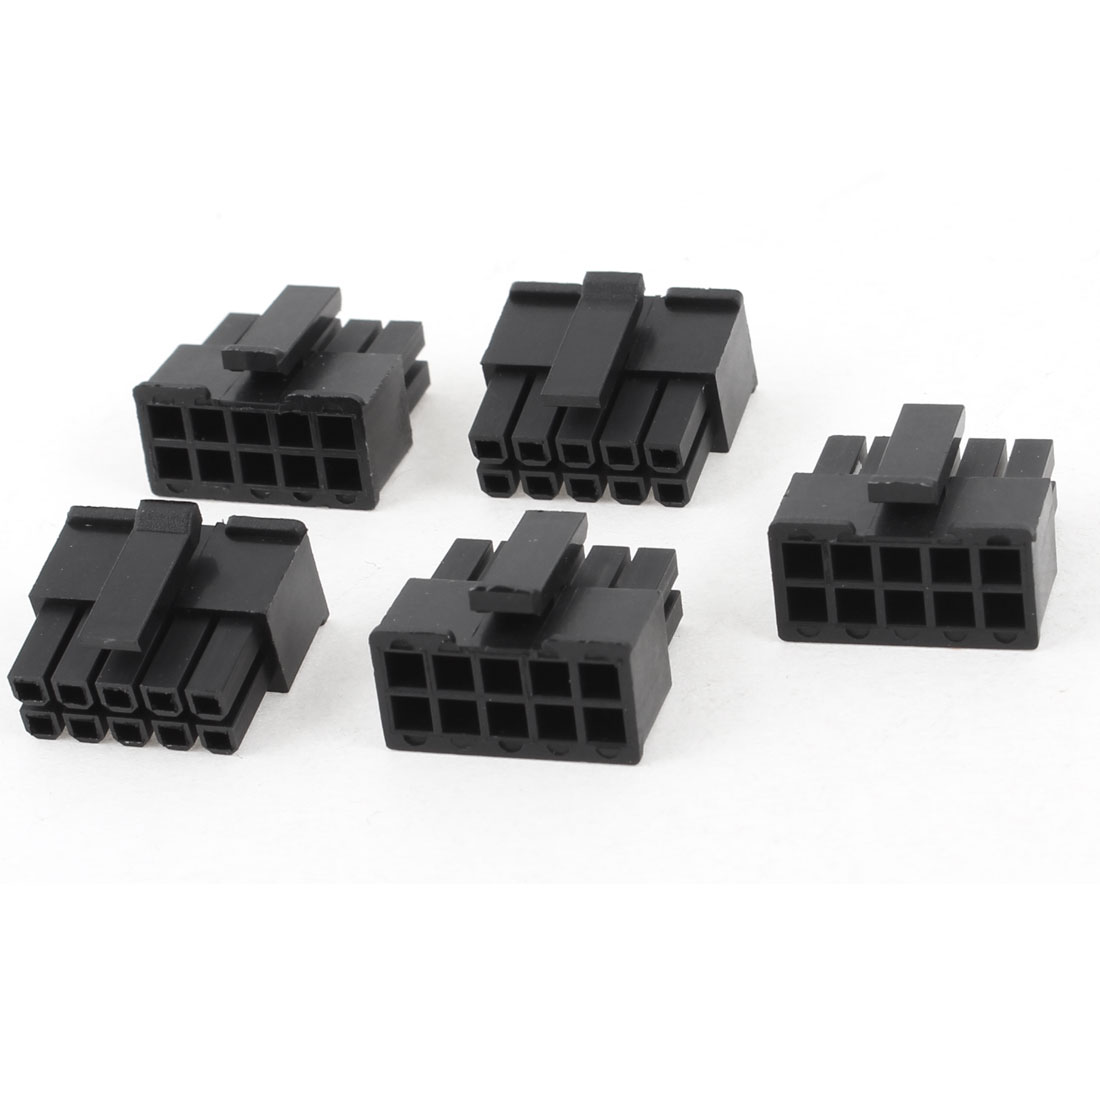 5 Pcs 10 Pin Male 3mm Pitch Slot Socket Car Auto PC PSU Power ATX Connector Black